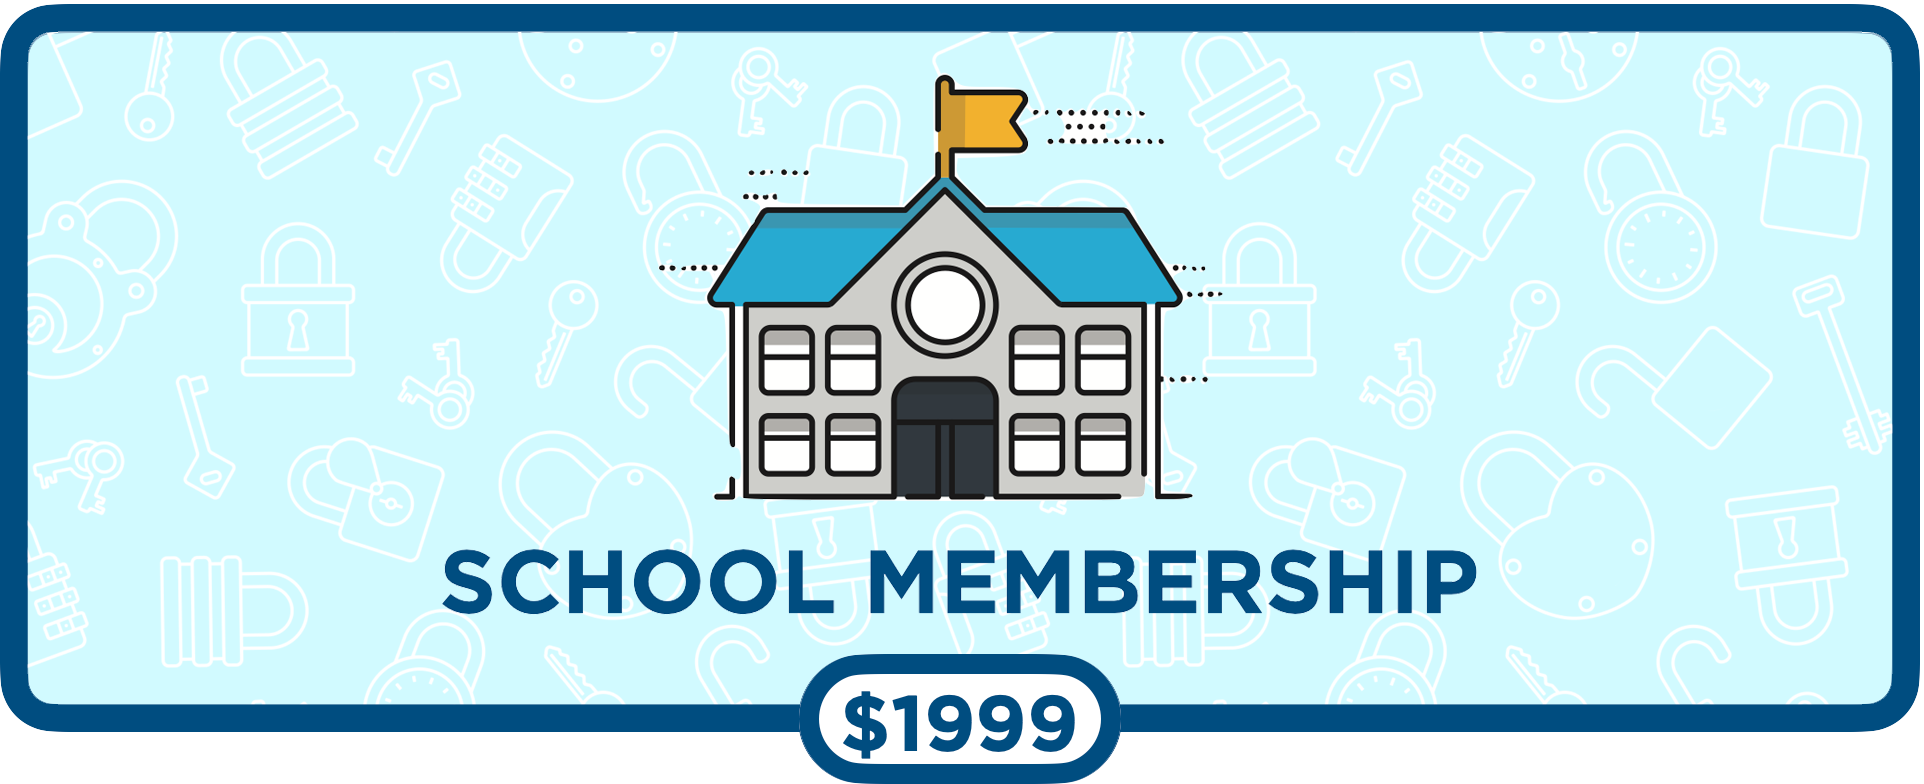 Breakout EDU School Membership